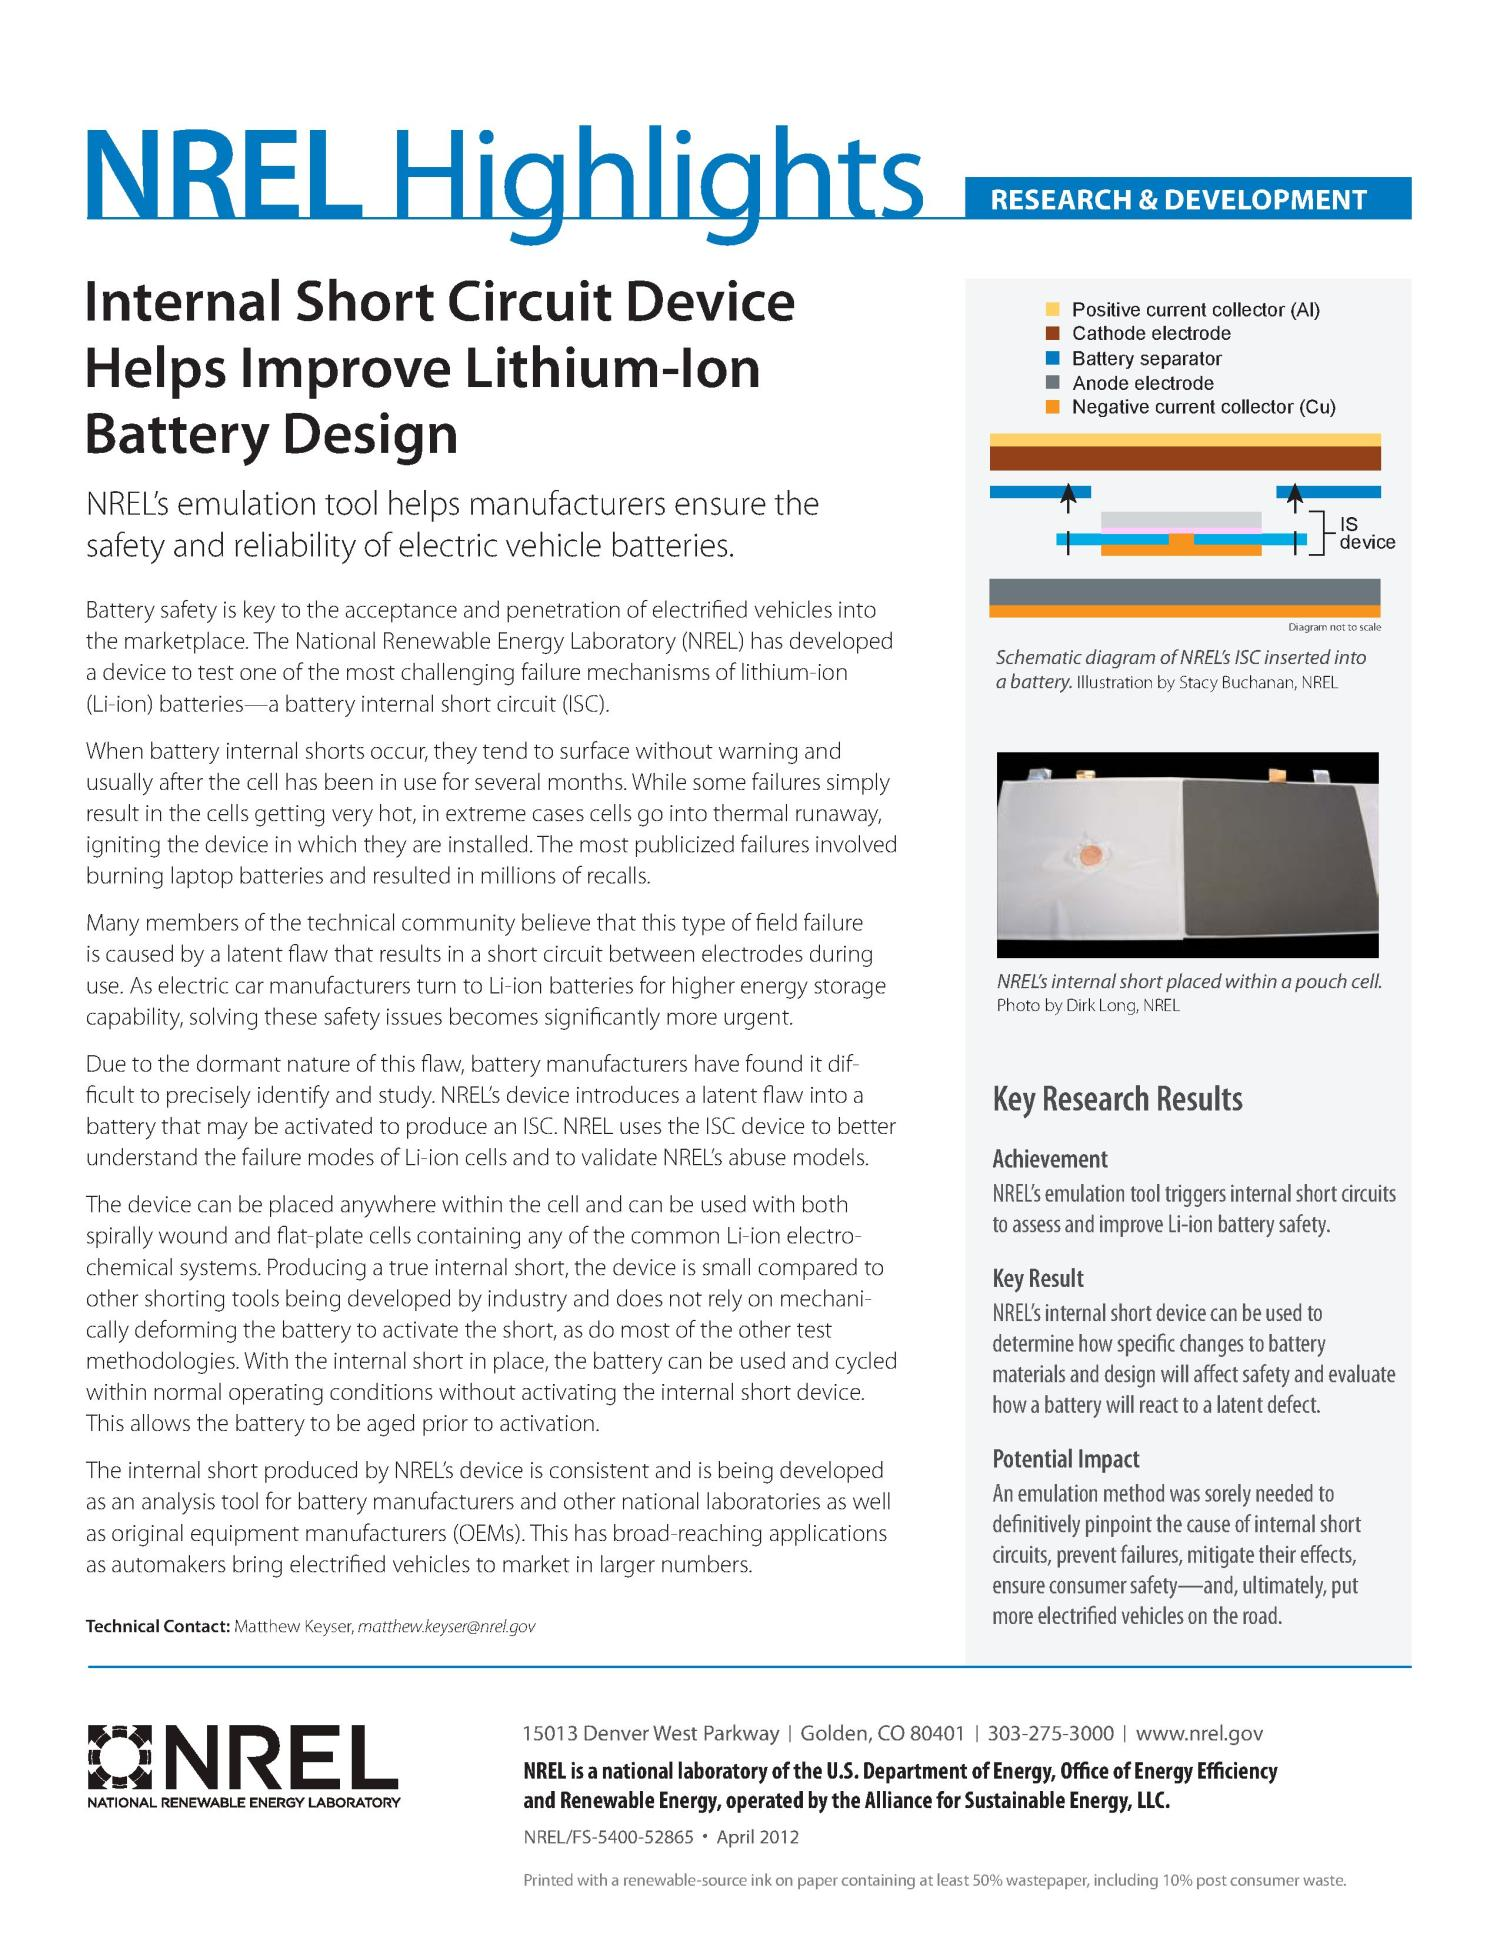 Internal Short Circuit Device Helps Improve Lithium Ion Battery Pack Wiring Diagram Design Fact Sheet Digital Library